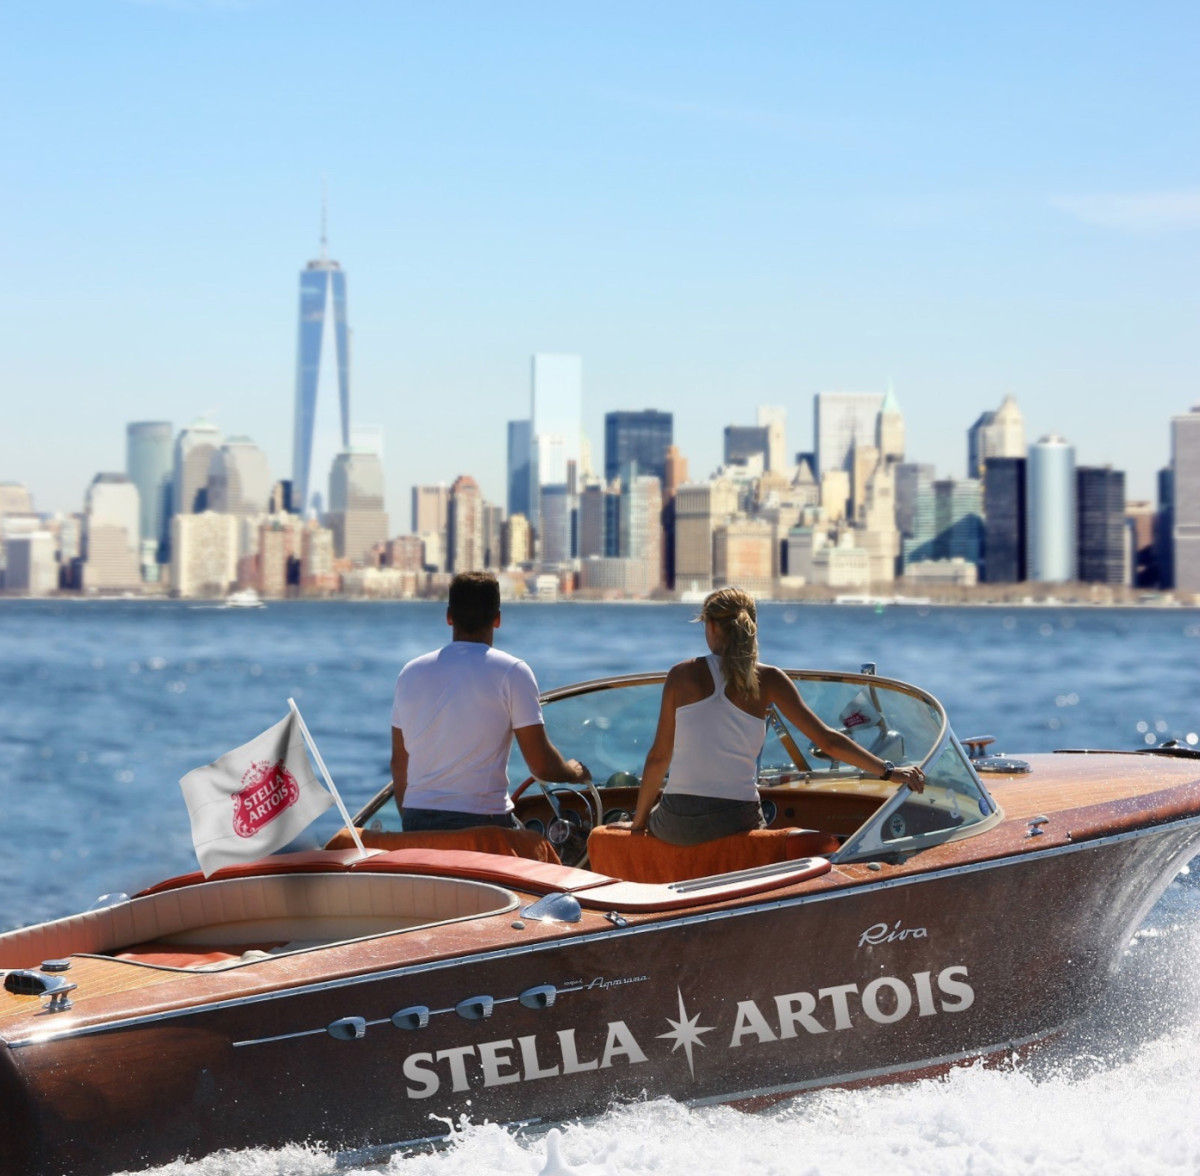 Stella Artois Offers Free Riva Boat Rides On The East River photo